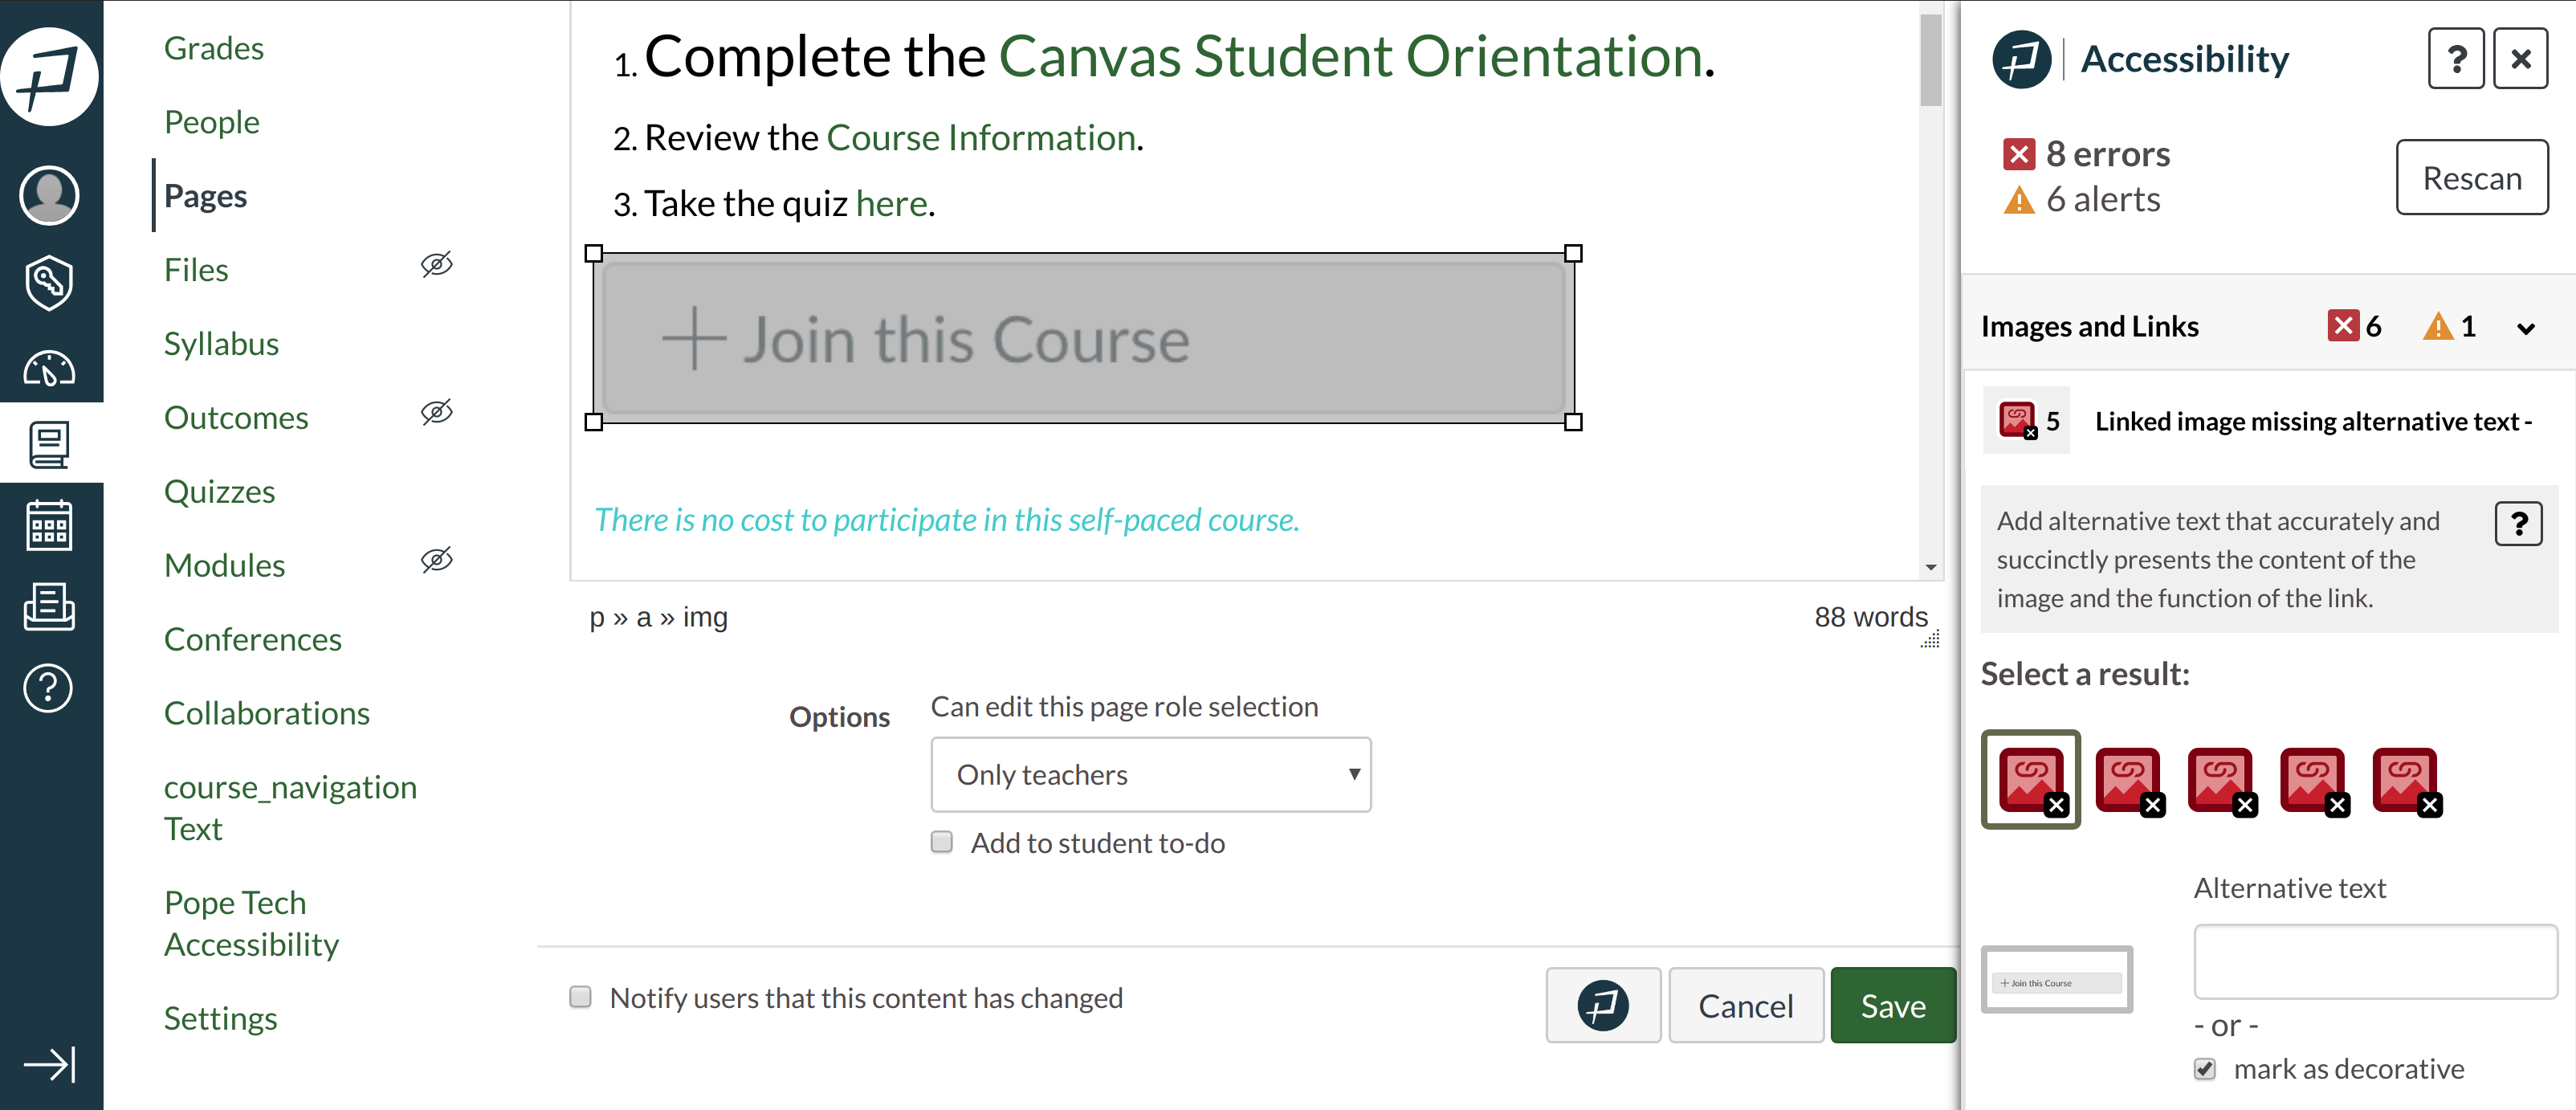 Instructor Accessibility Guide open in Canvas